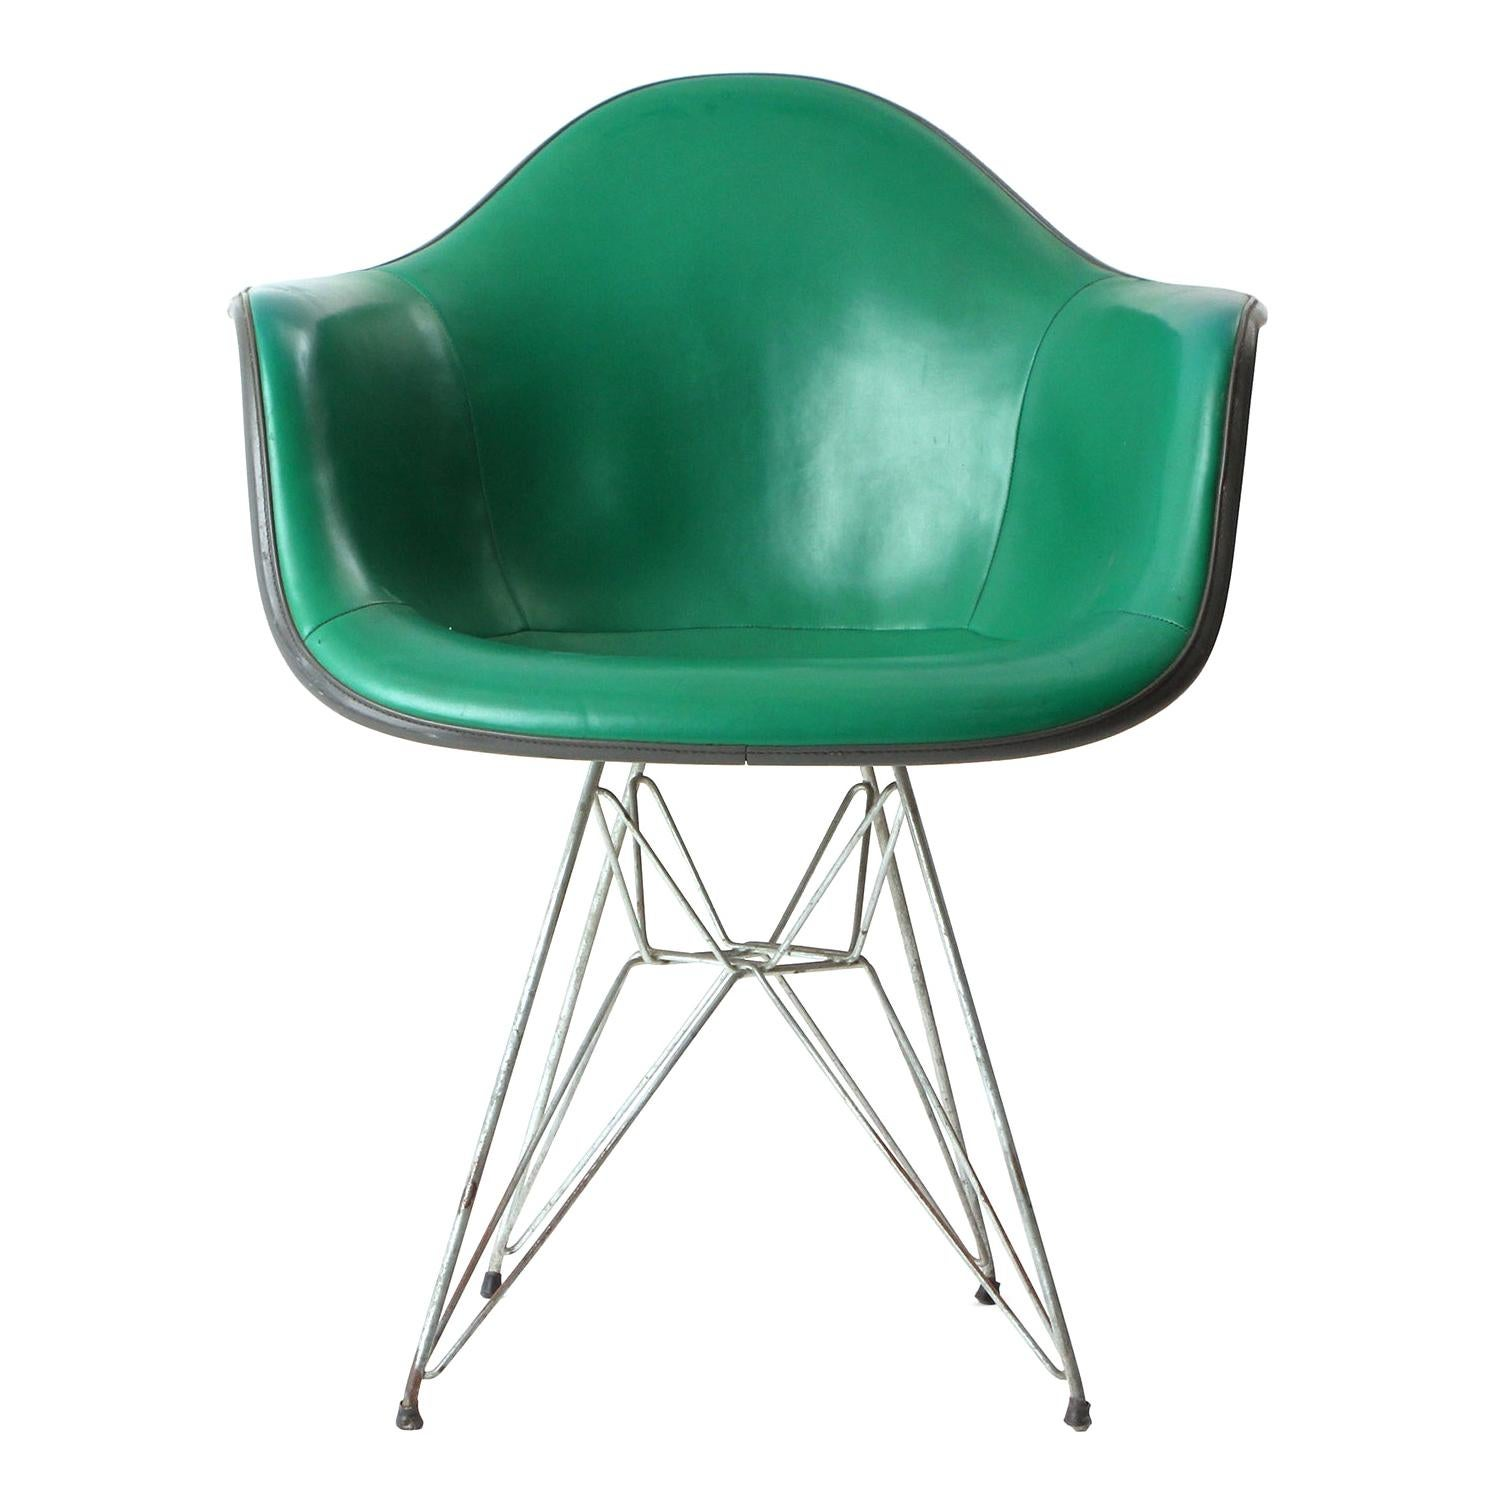 Molded Armchair By Charles U0026 Ray Eames For Herman Miller For Sale